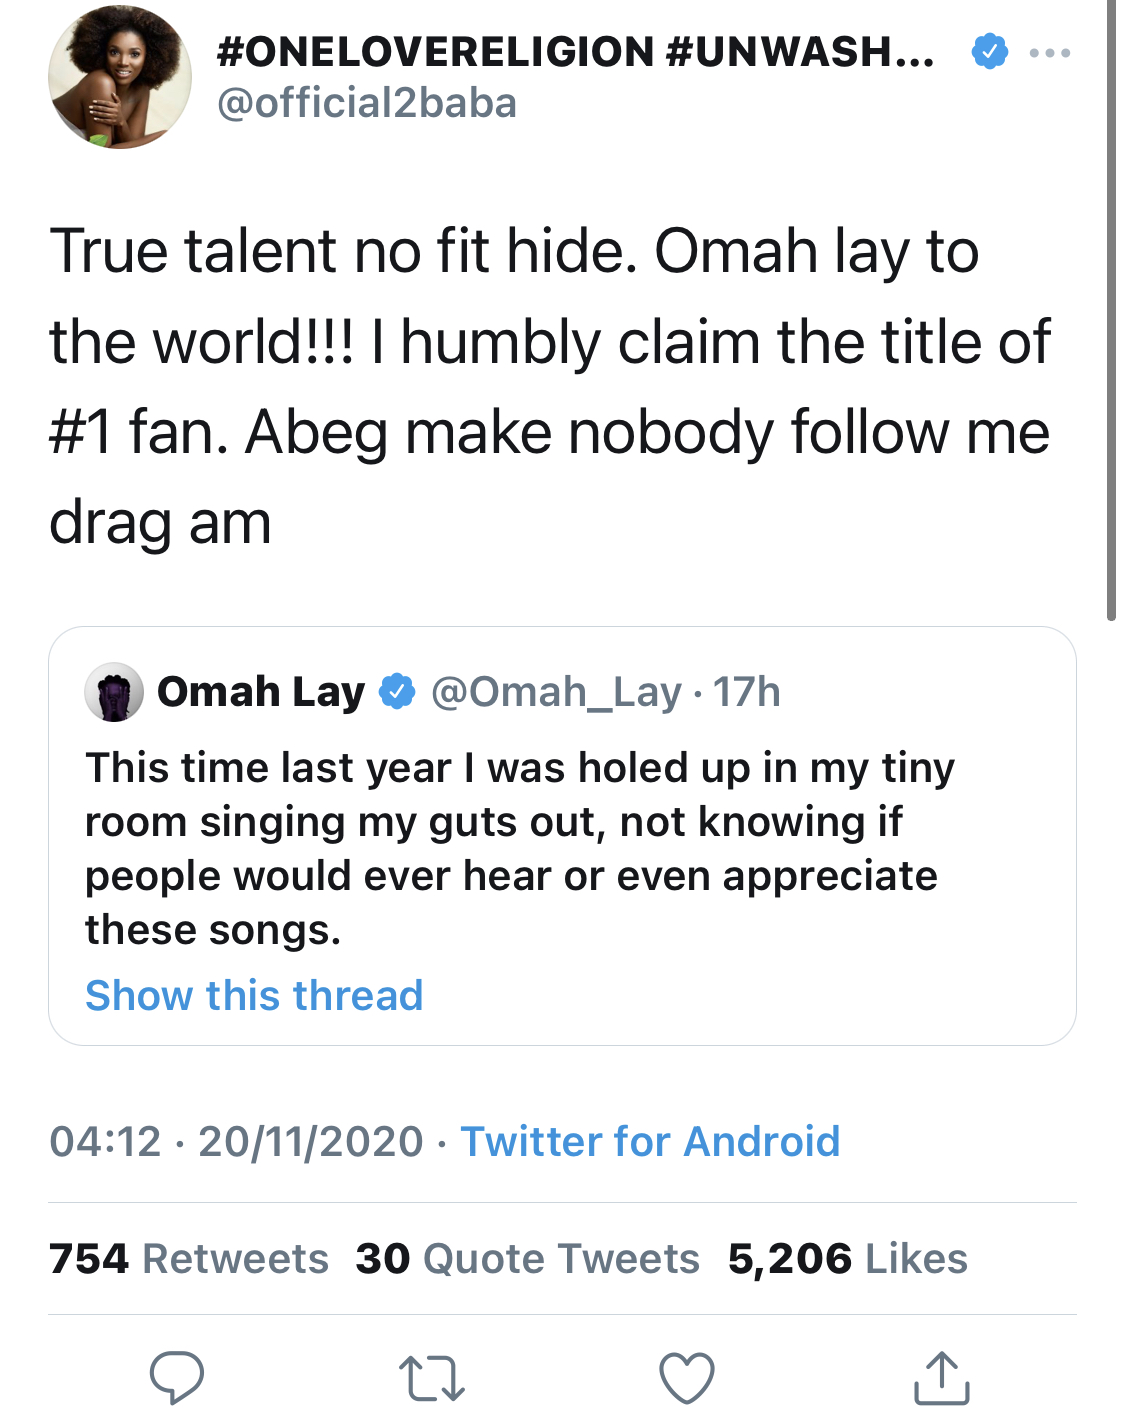 The singer's tweet